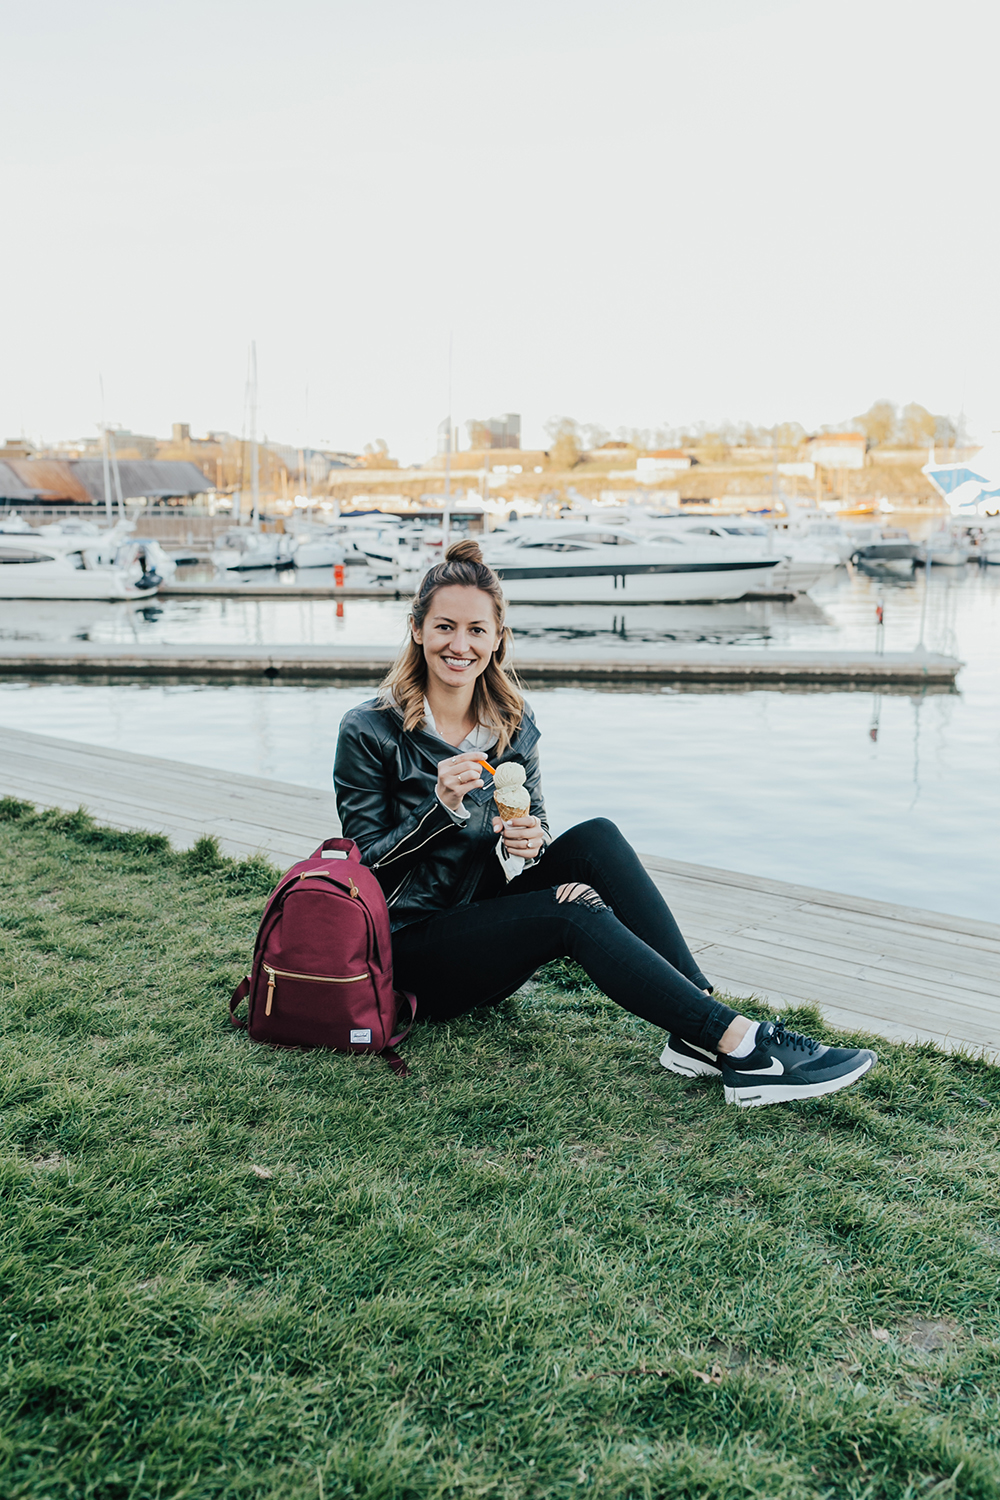 livvyland-blog-olivia-watson-fashion-travel-blogger-princess-cruises-scandinavia-what-to-wear-pack-oslo-norway-1